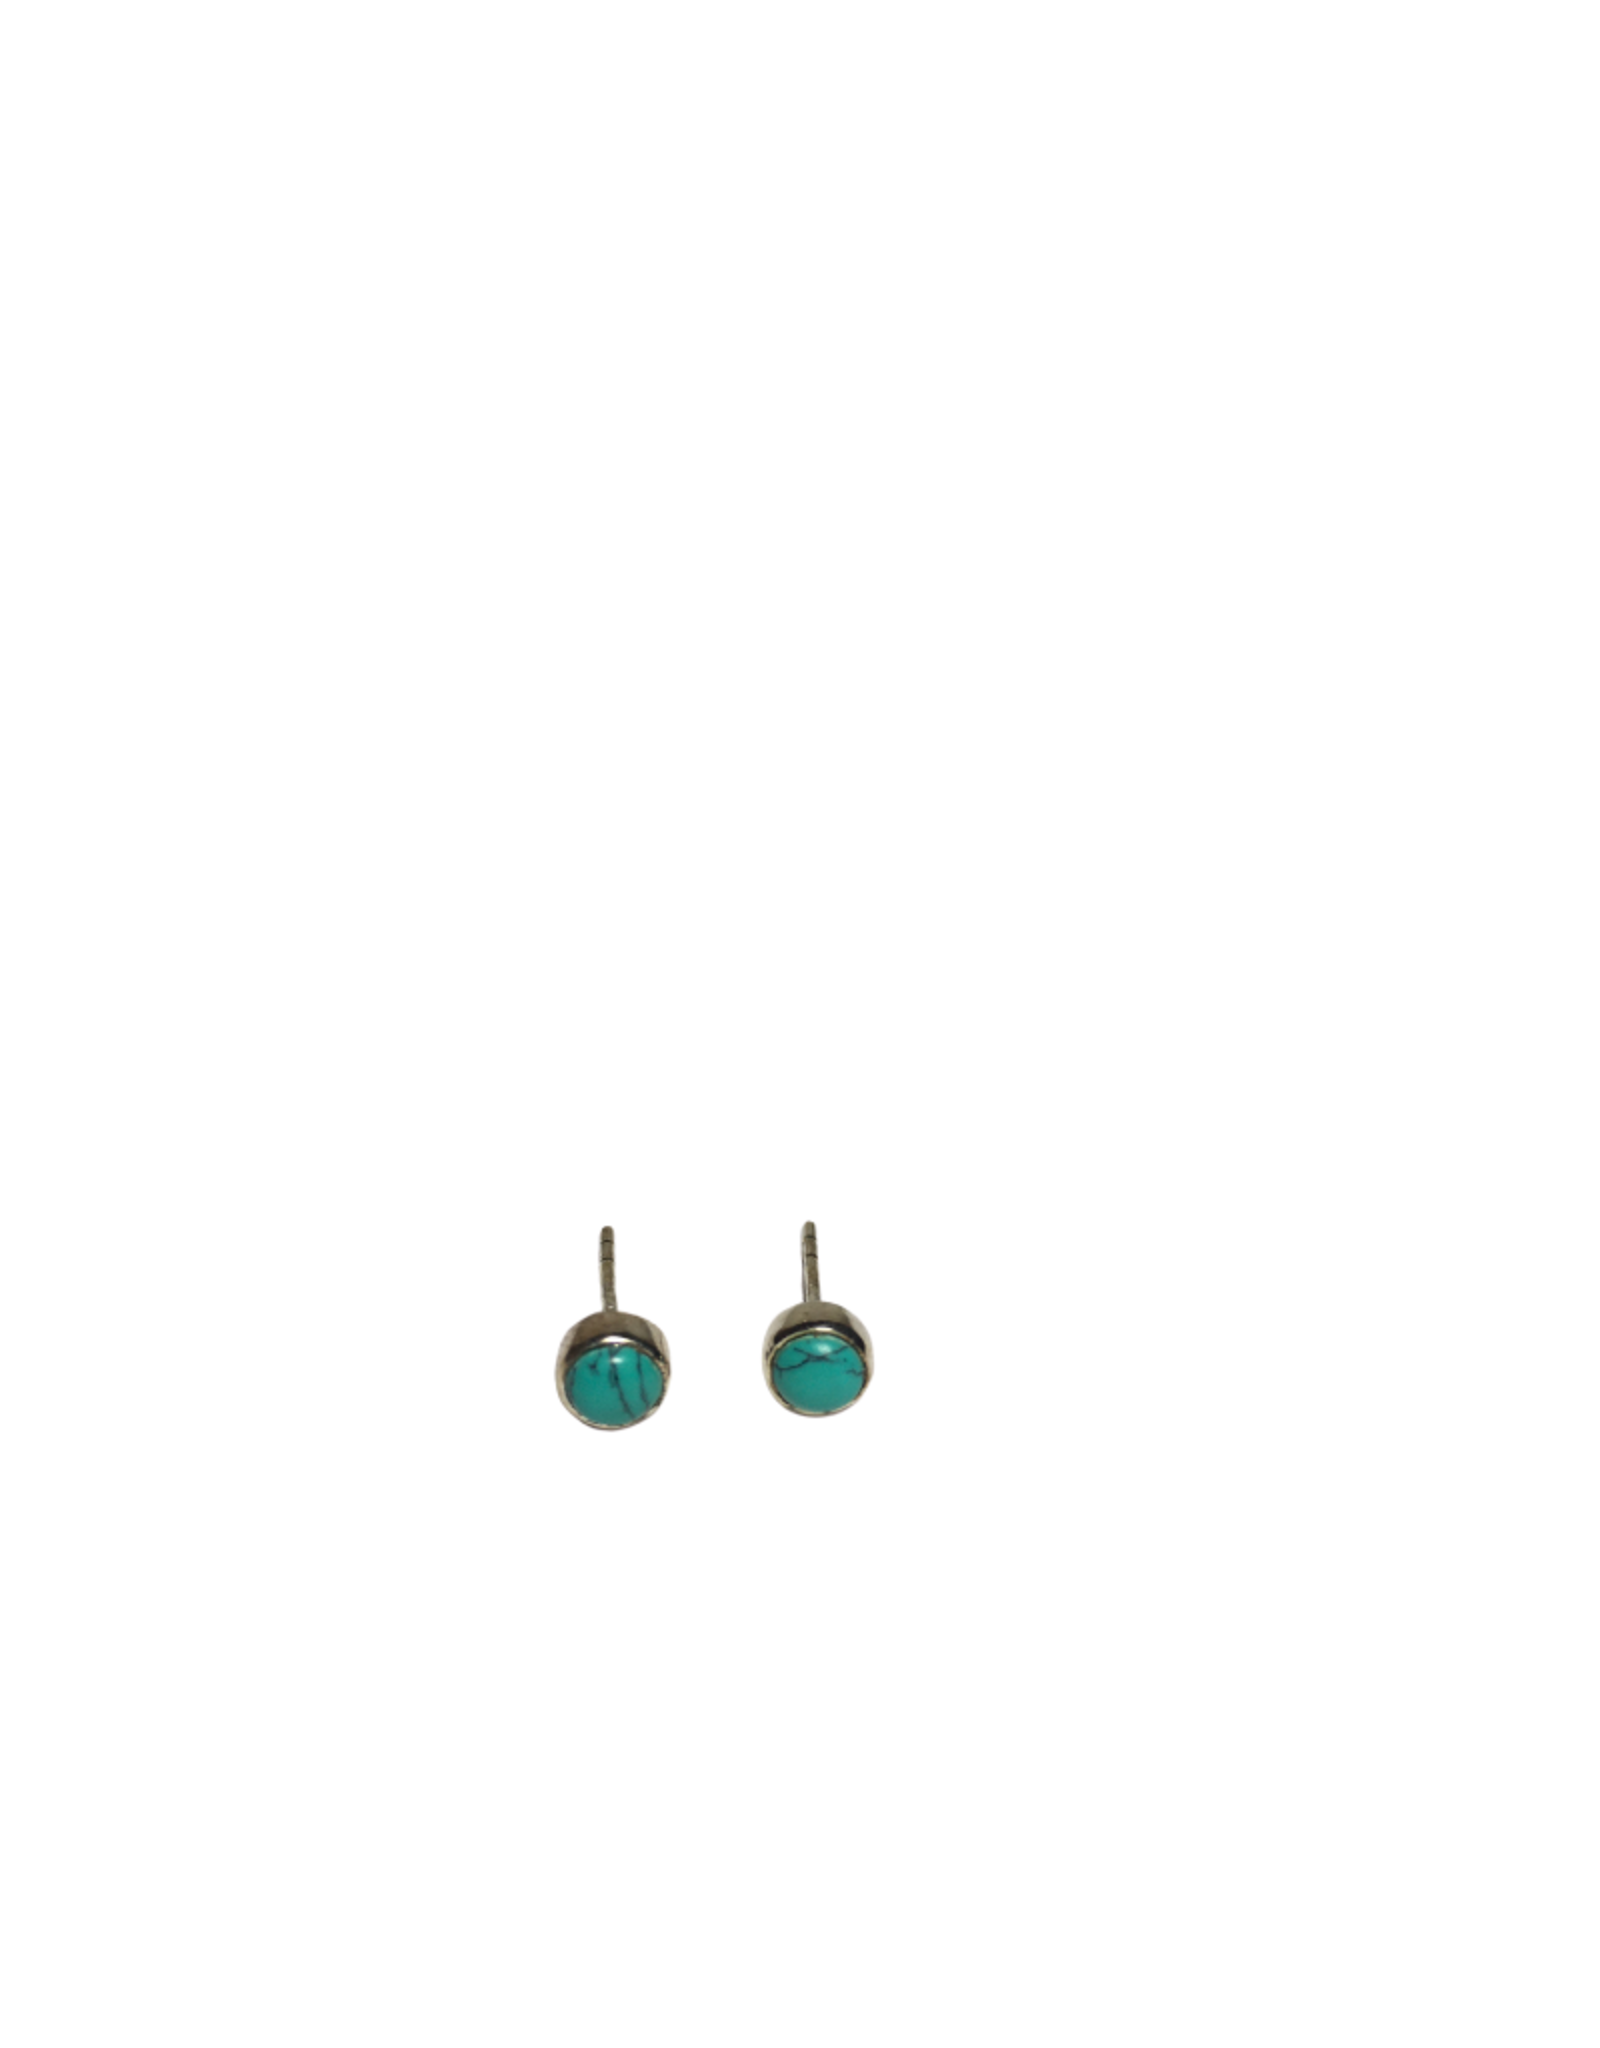 Ten Thousand Villages Turquoise Stud Earrings